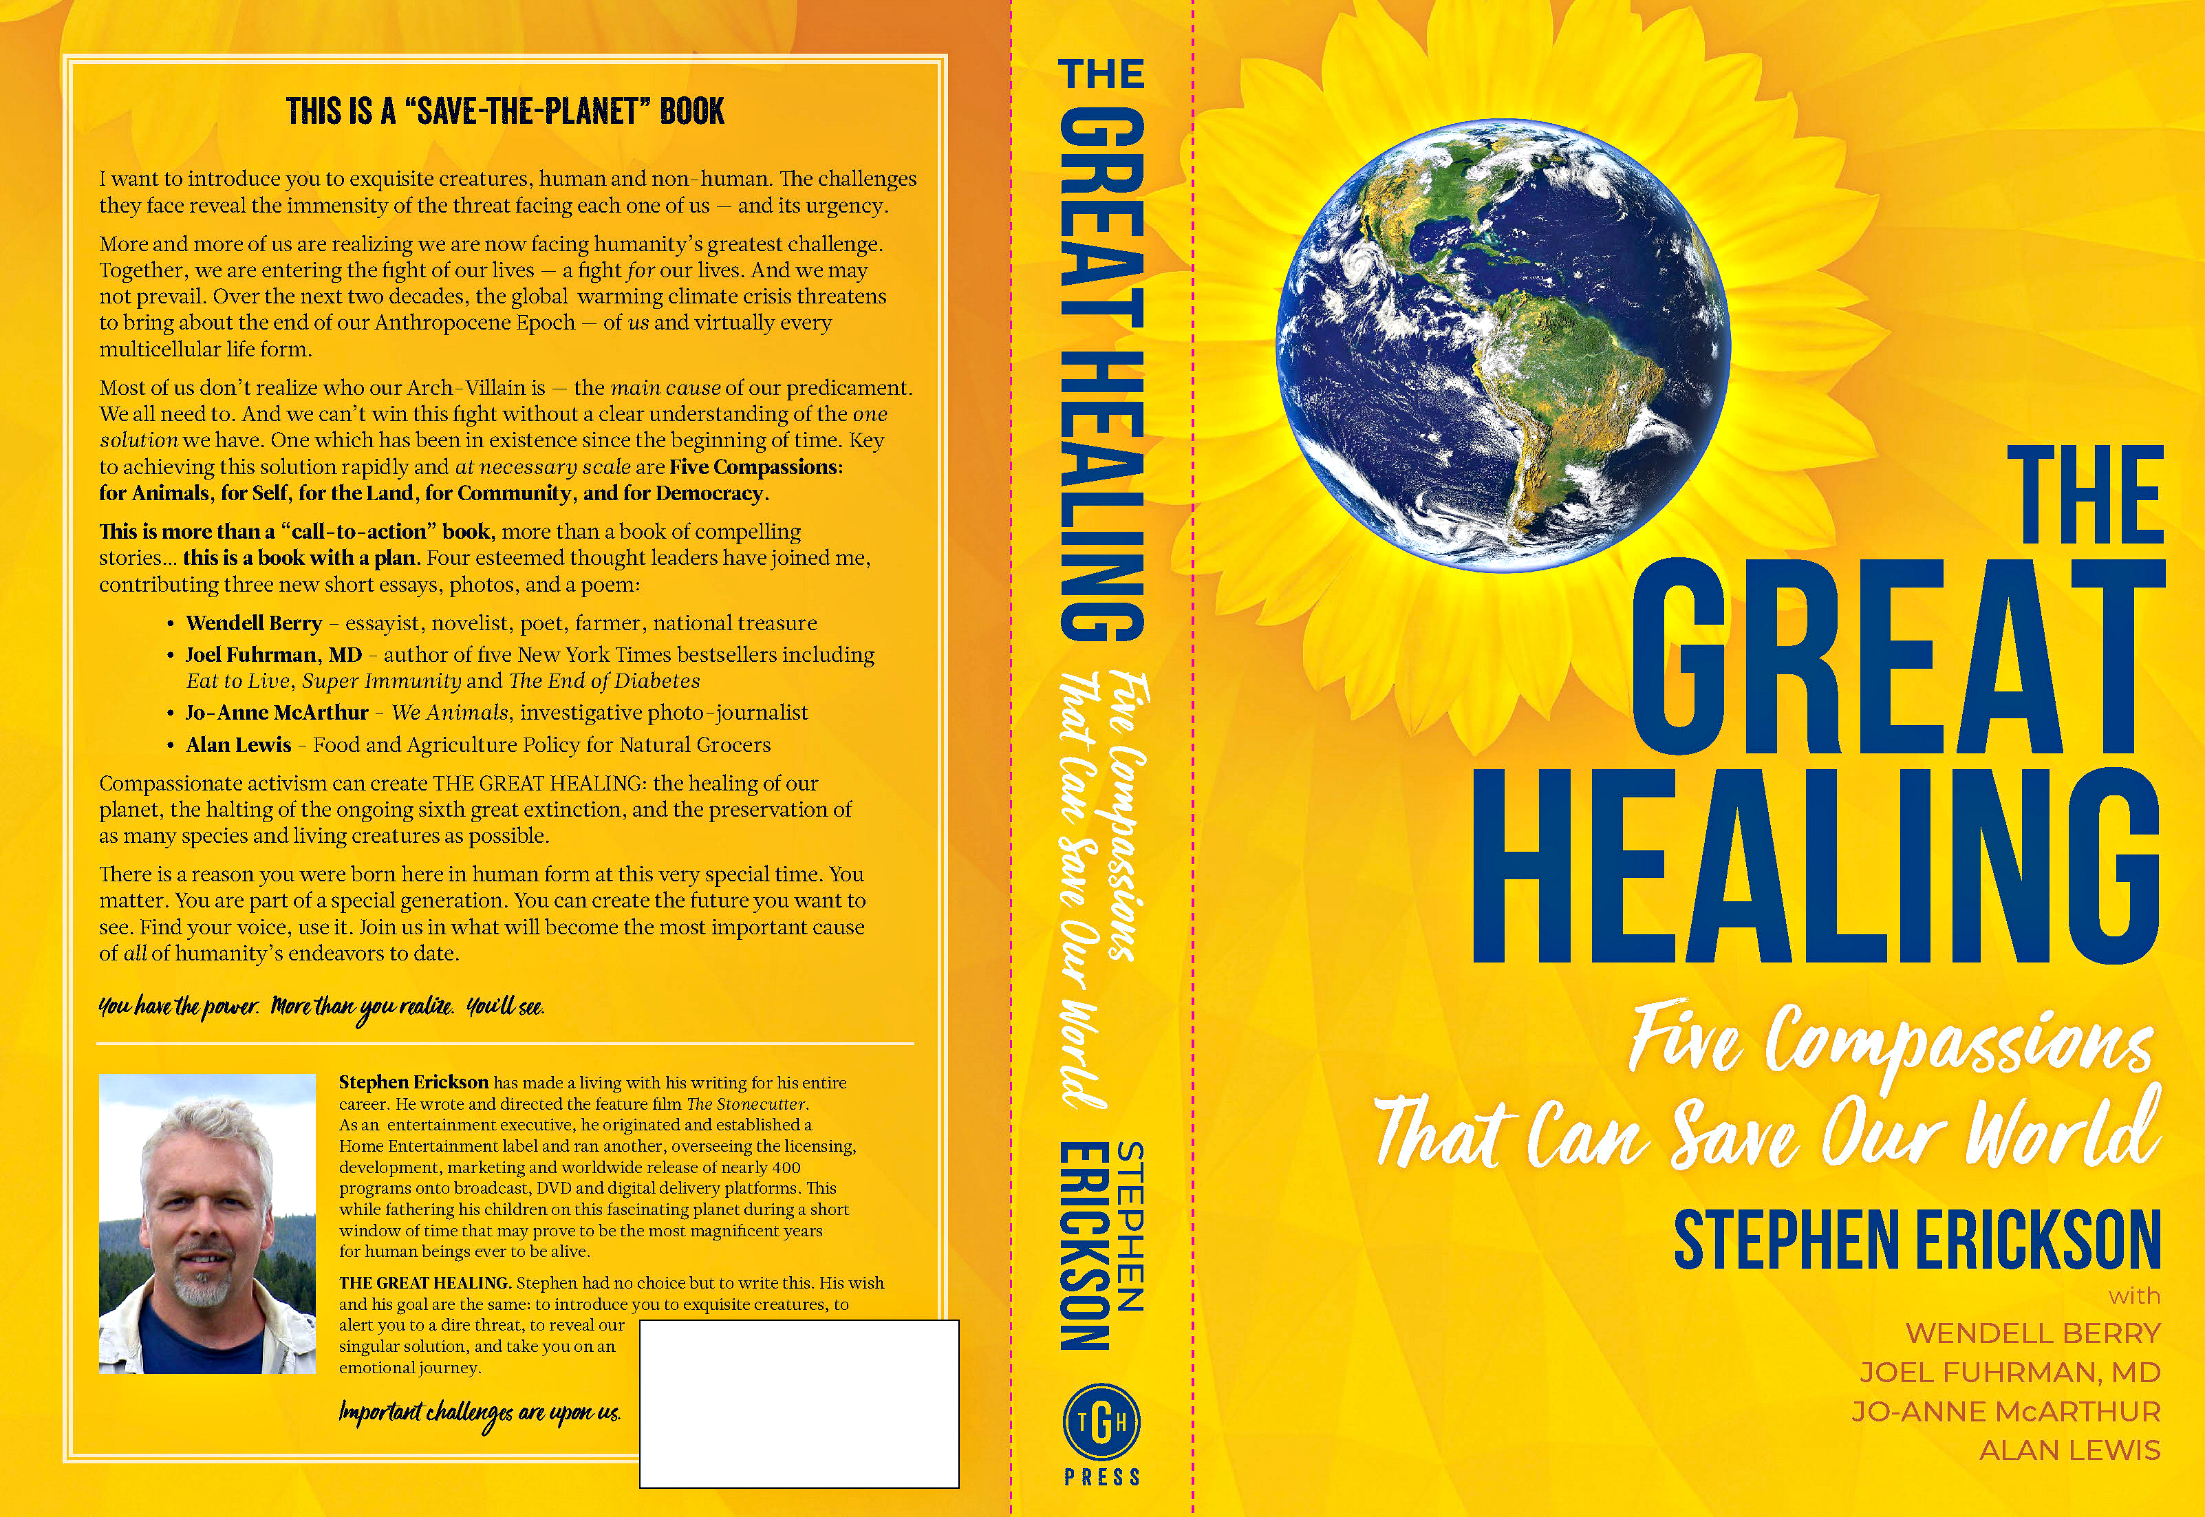 The_Great_Healing_Book_Cover_2.6mb_062519.jpg